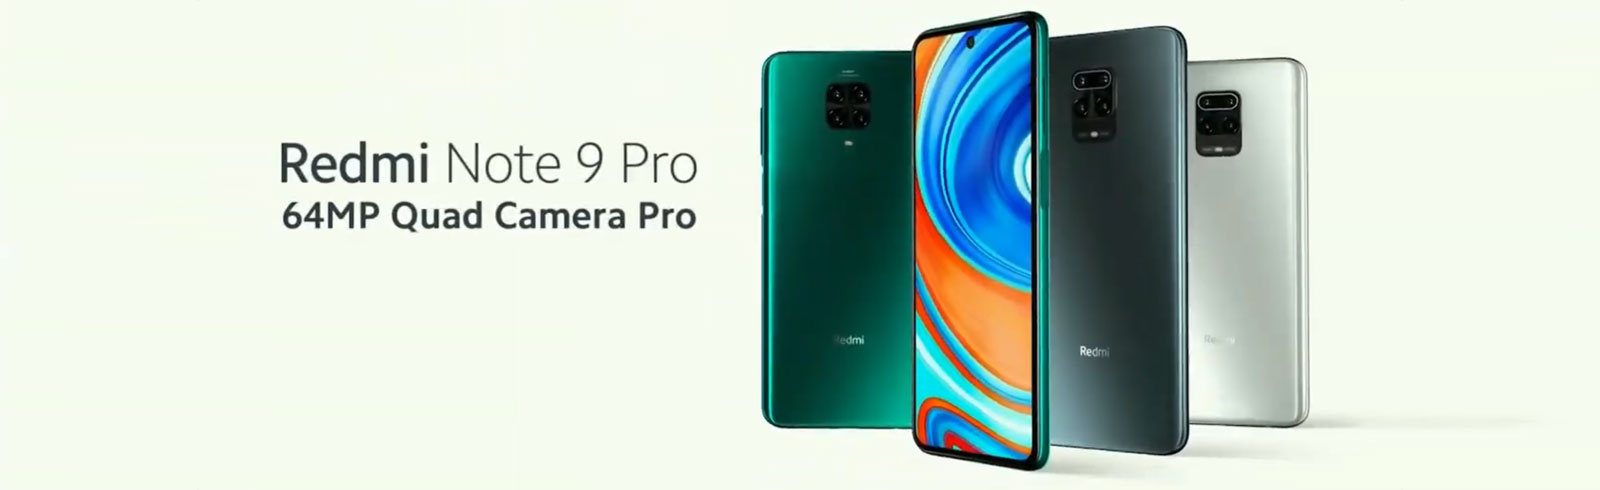 Xiaomi unveils the Redmi Note 9 Pro, Redmi Note 9, Mi Note 10 Lite - specifications and prices